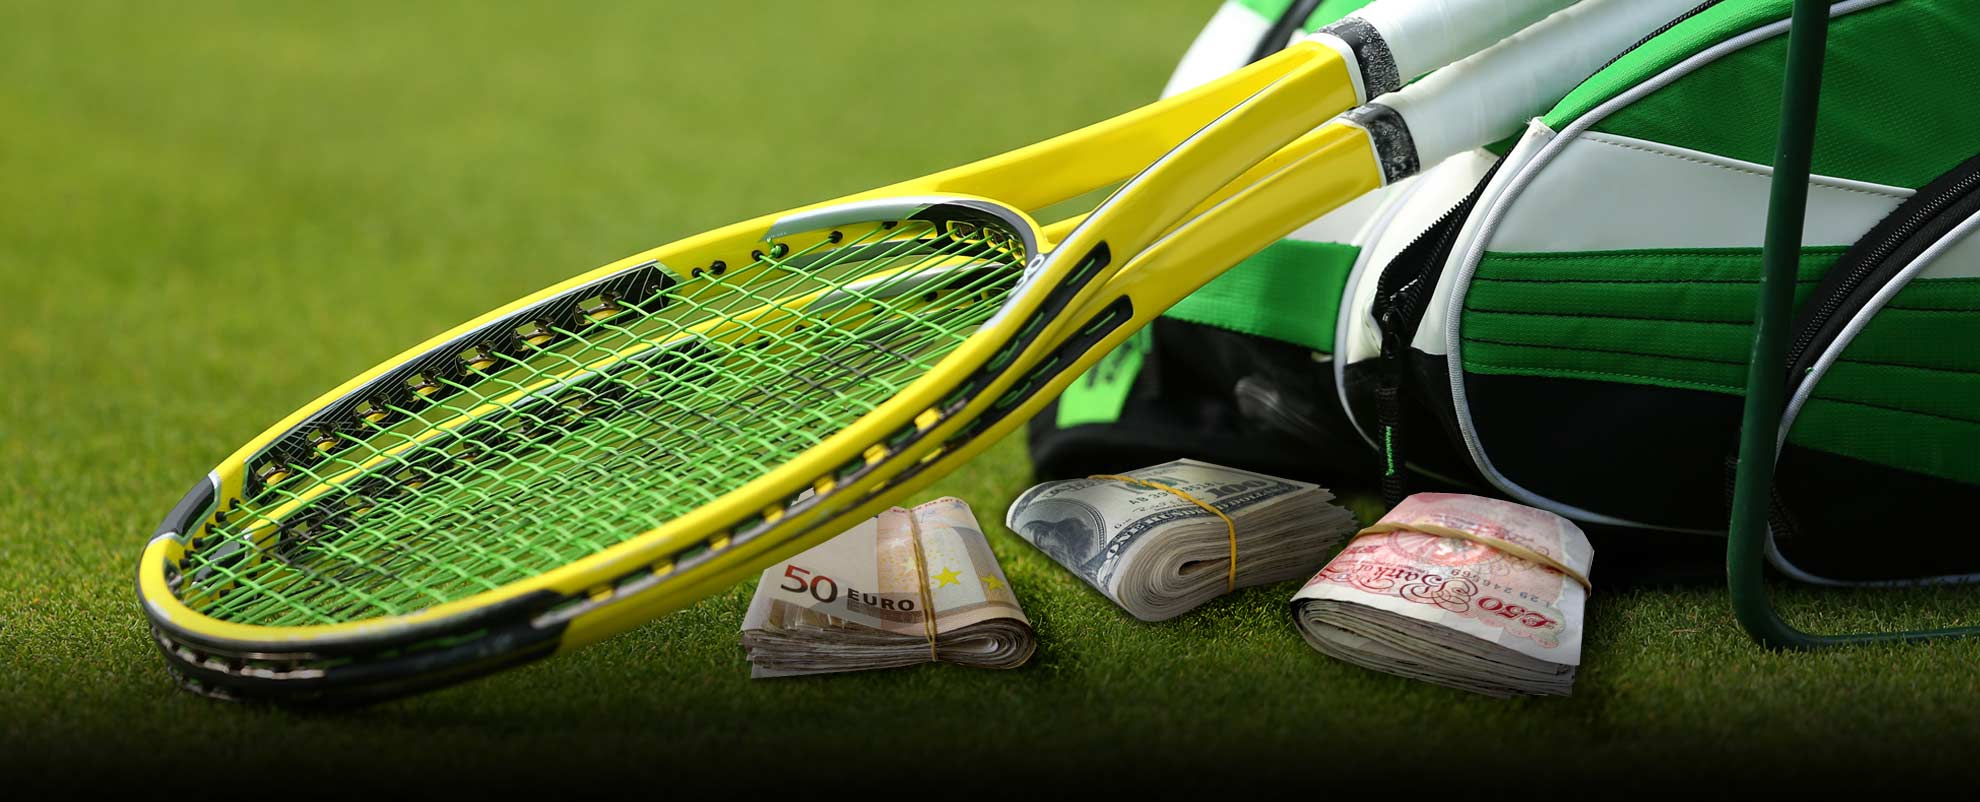 Tennis Match-Fixing – Don't Read Into It